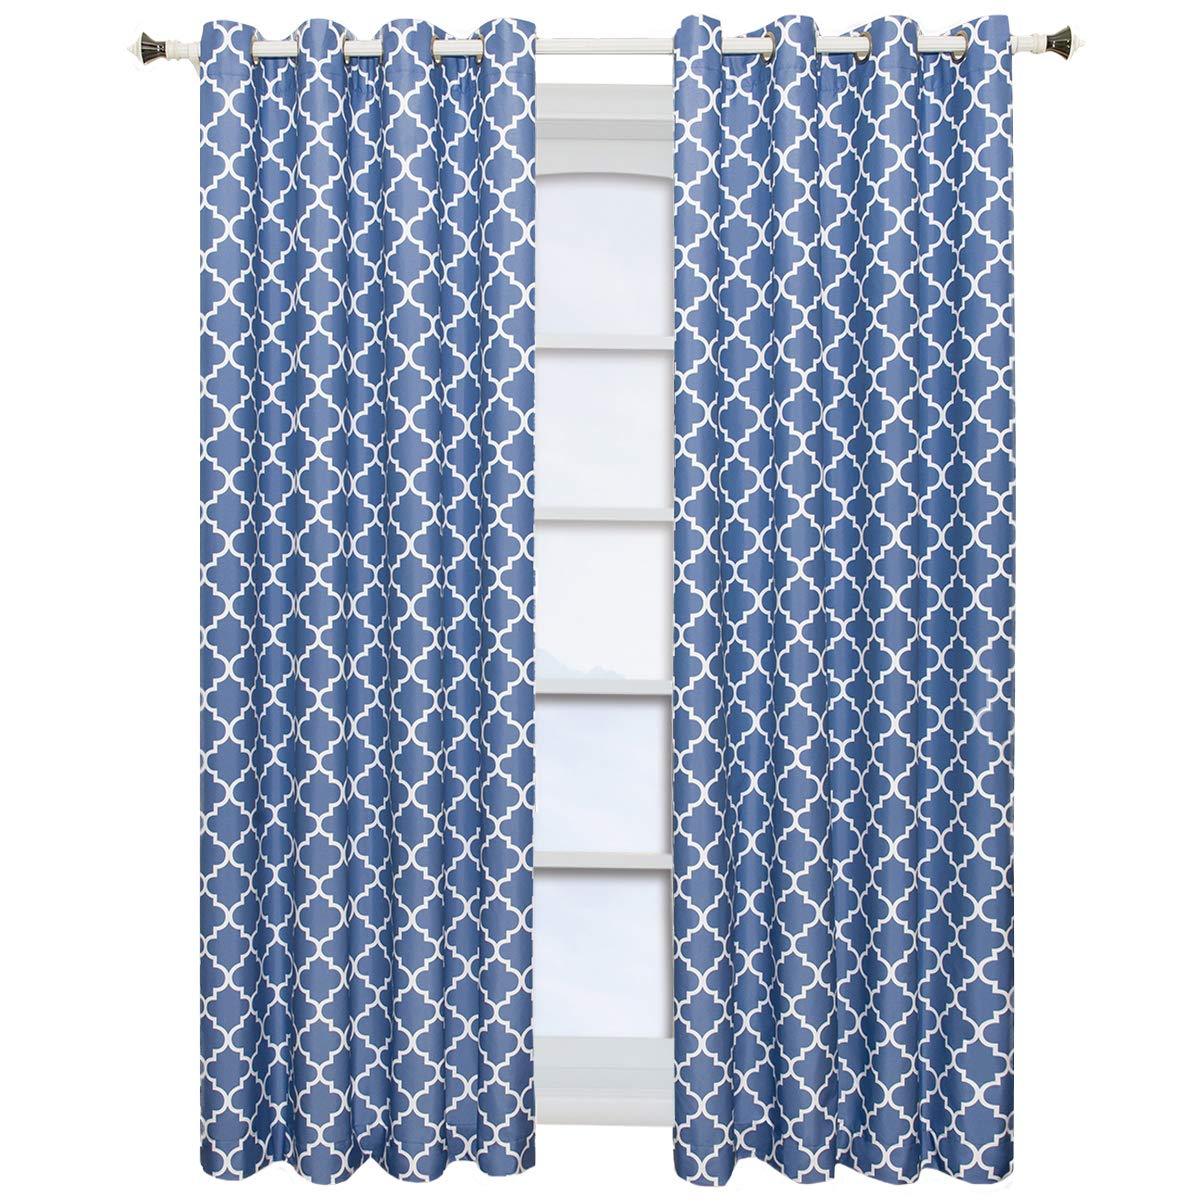 Purple- Thermal Insulated Room-Darkening Curtain Package contains set of 2 panels 84 inch long Set of 2 Panels 104Wx84L -Royal Tradition 52-Inch by 84-Inch each Panel Wholesalebeddings Meridian